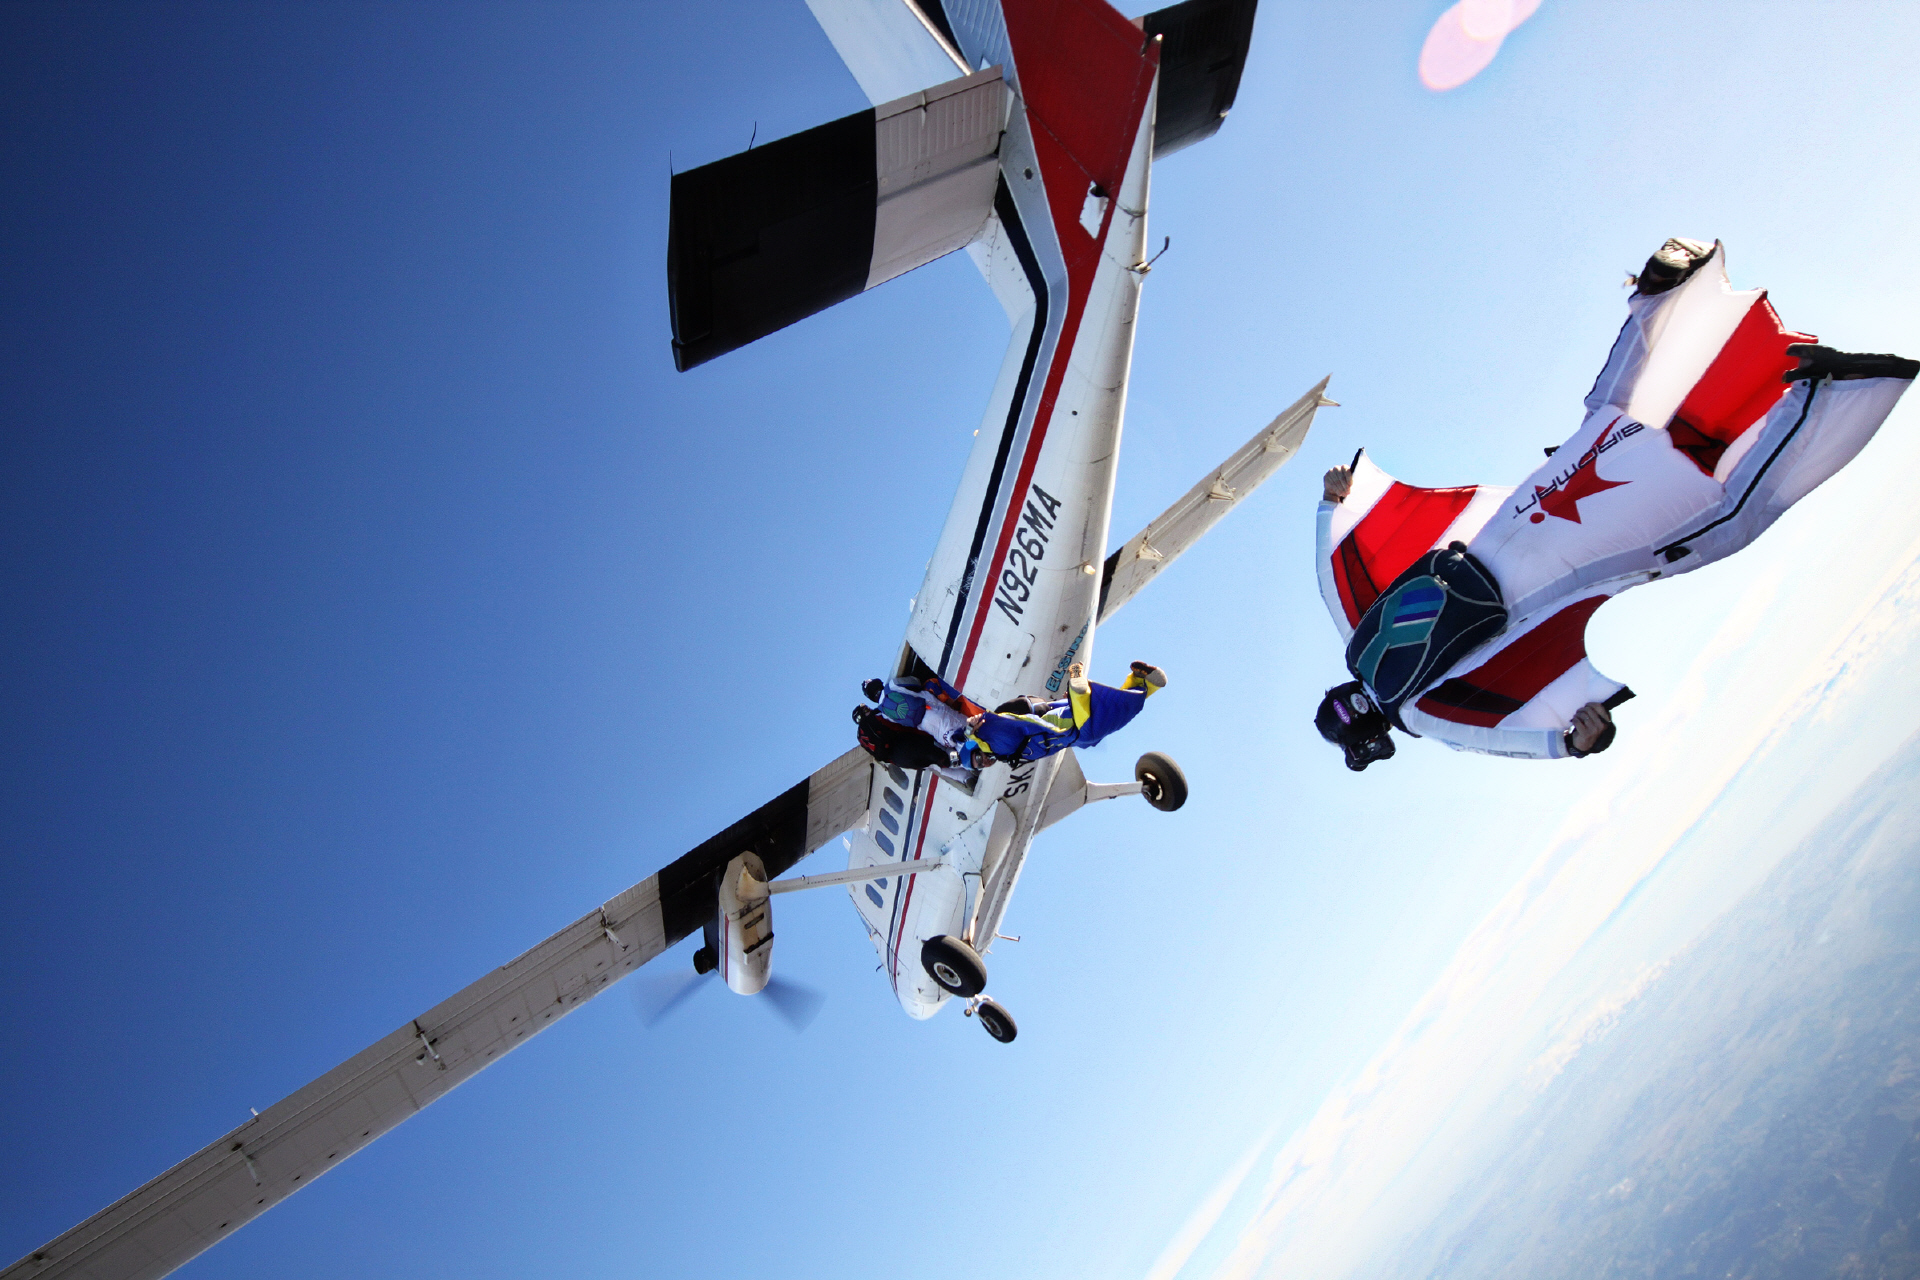 Extreme Sport : Wingsuit flying, the World Most Exhilarating and Dangerous Sport